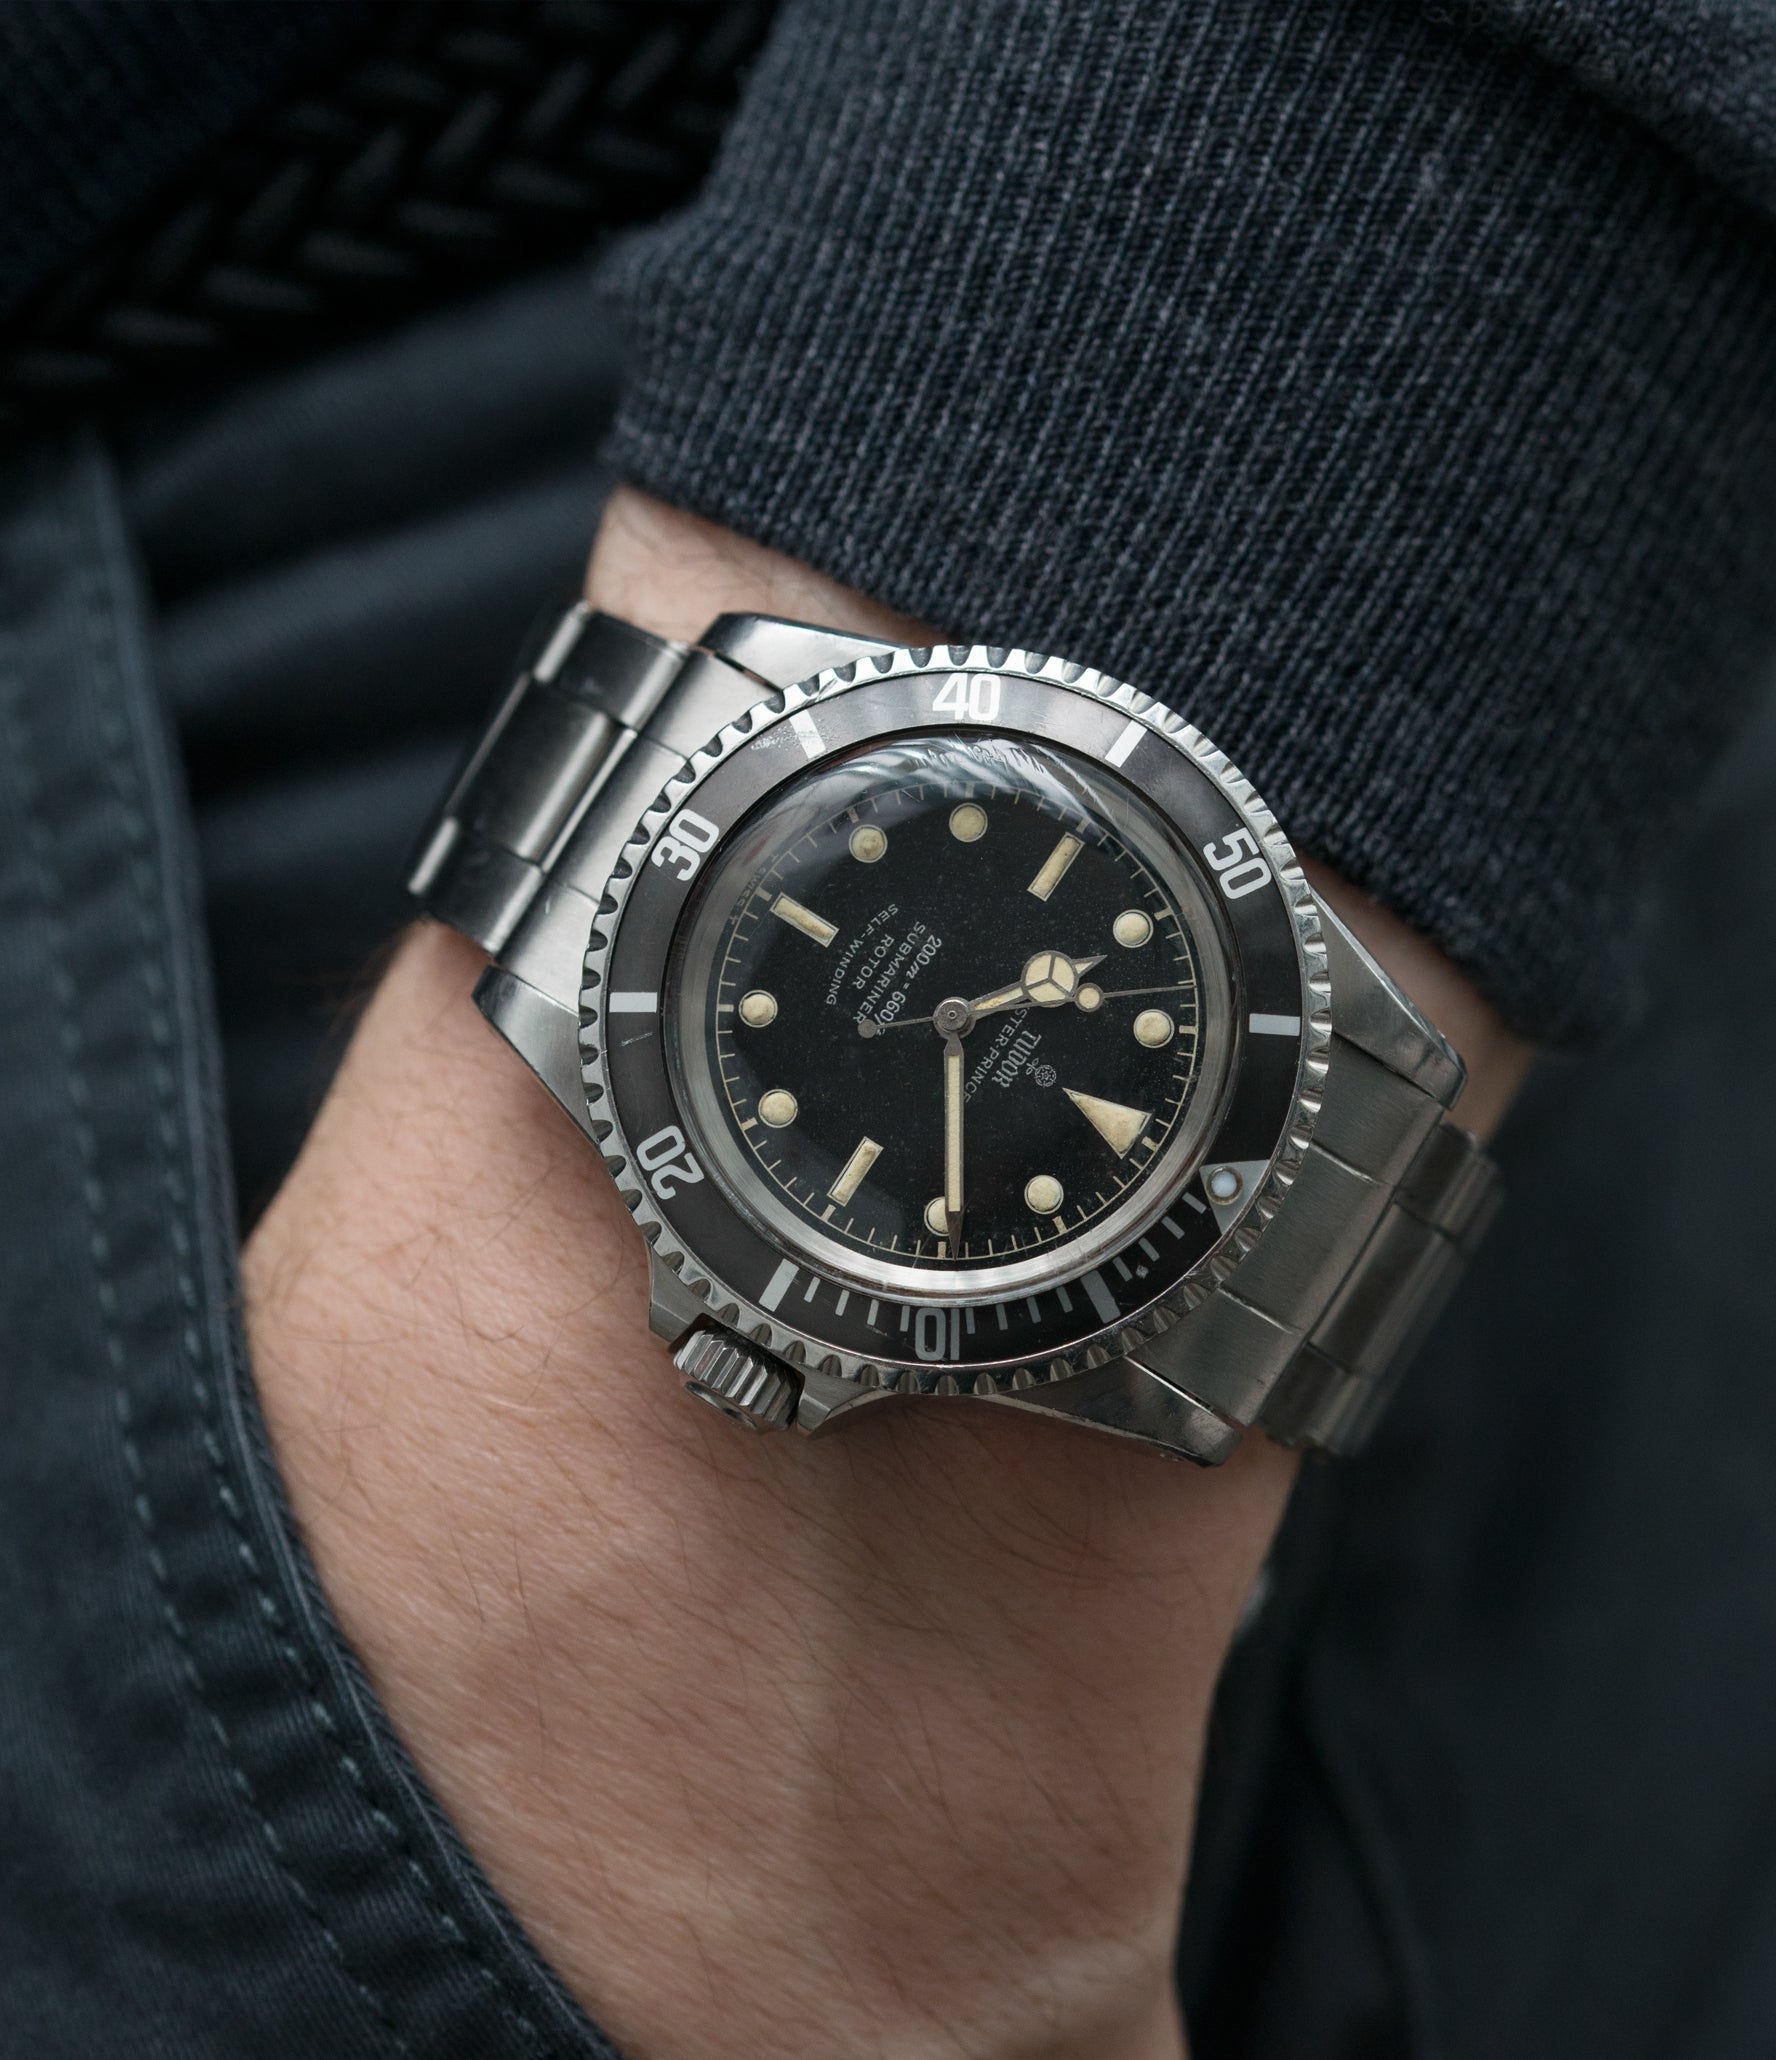 buy vintage wristwatch Tudor Submariner 7928 Oyster Prince Cal. 390 automatic sport watch at A Collected Man London online vintage watch specialist UK